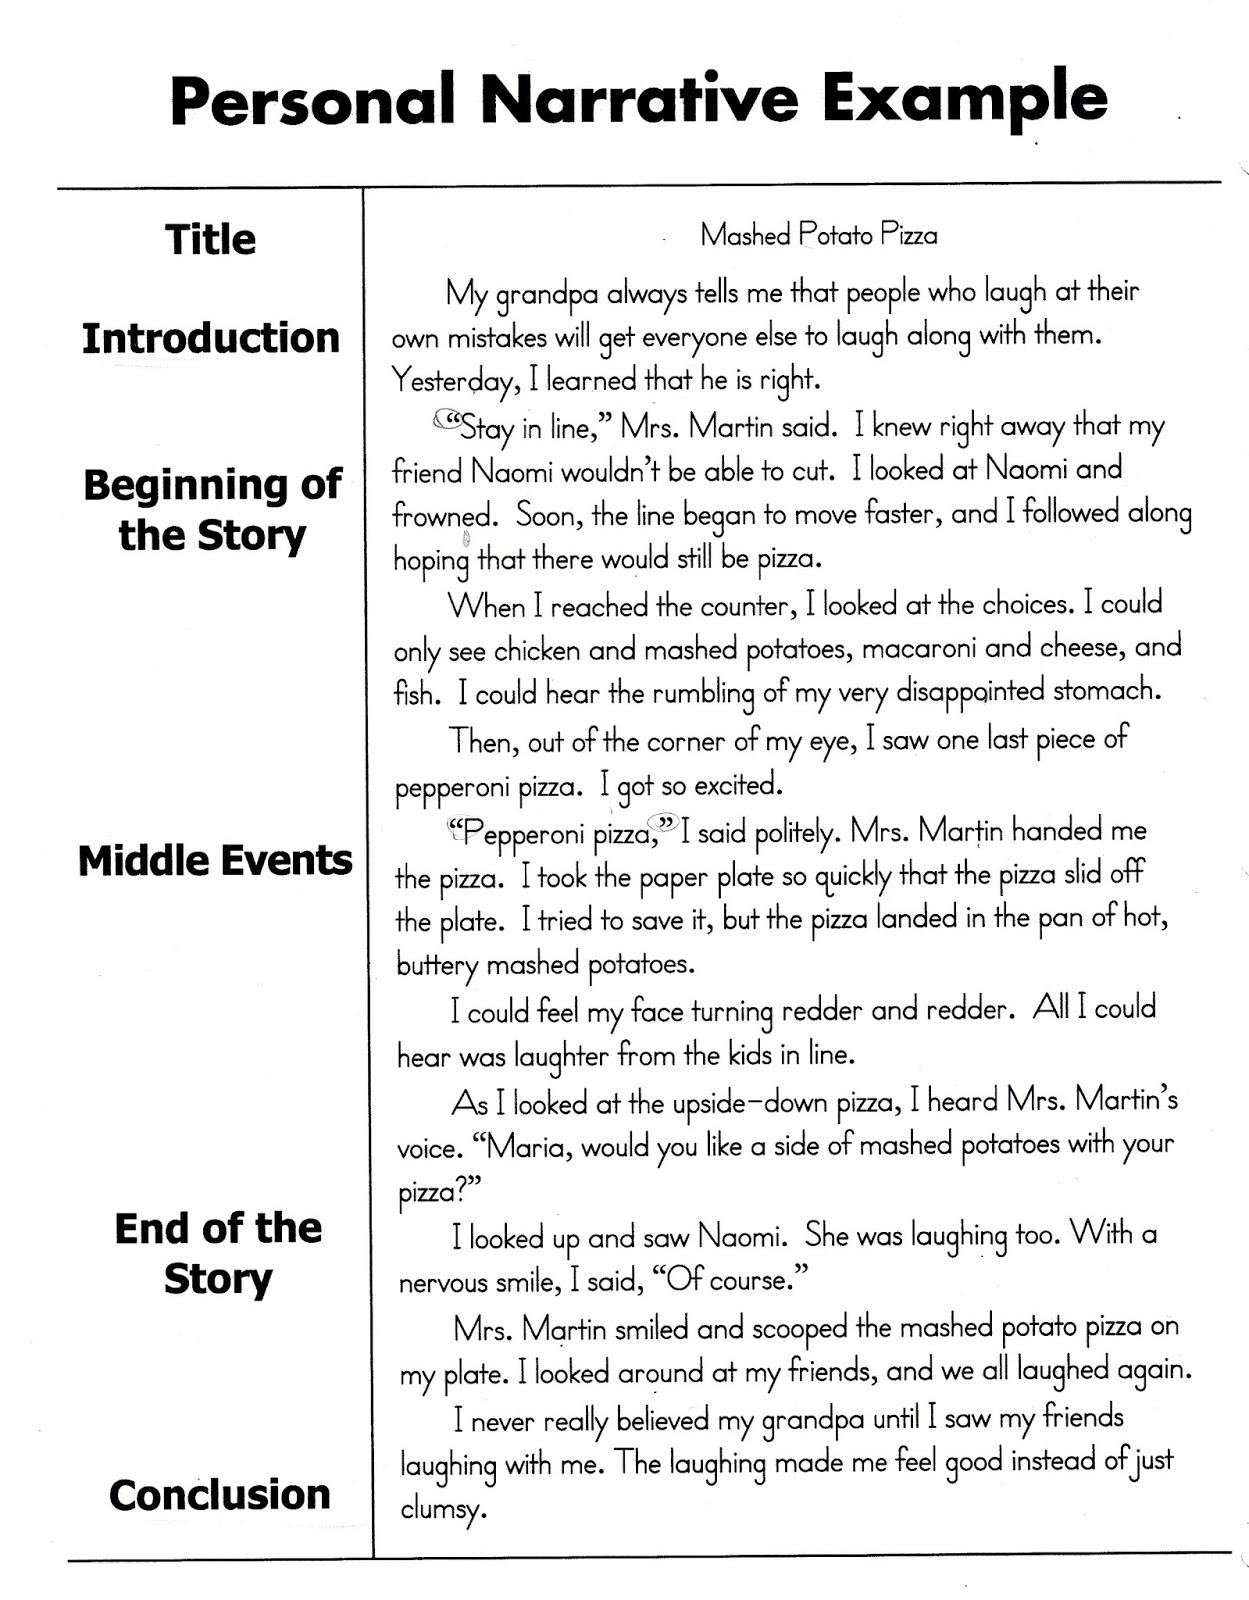 narrative sample essays Key aspects of personal narrative essay composing what is a narrative essay first and foremost, it is necessary to answer a question – what is a narrative essay.